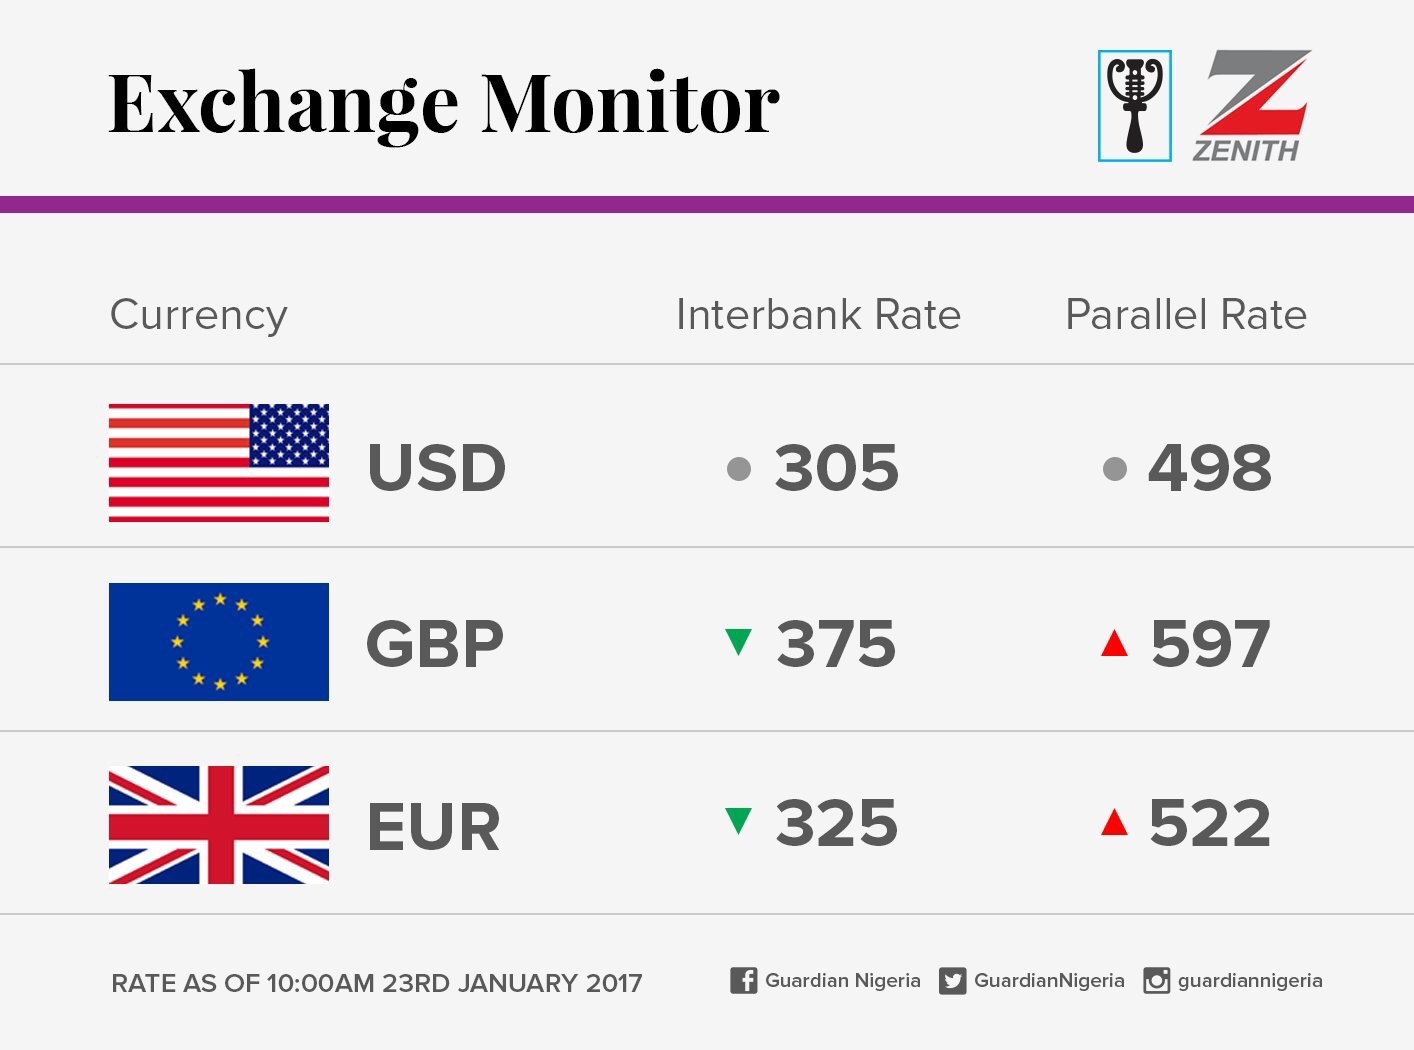 Exchange Rate For 23rd January 2017